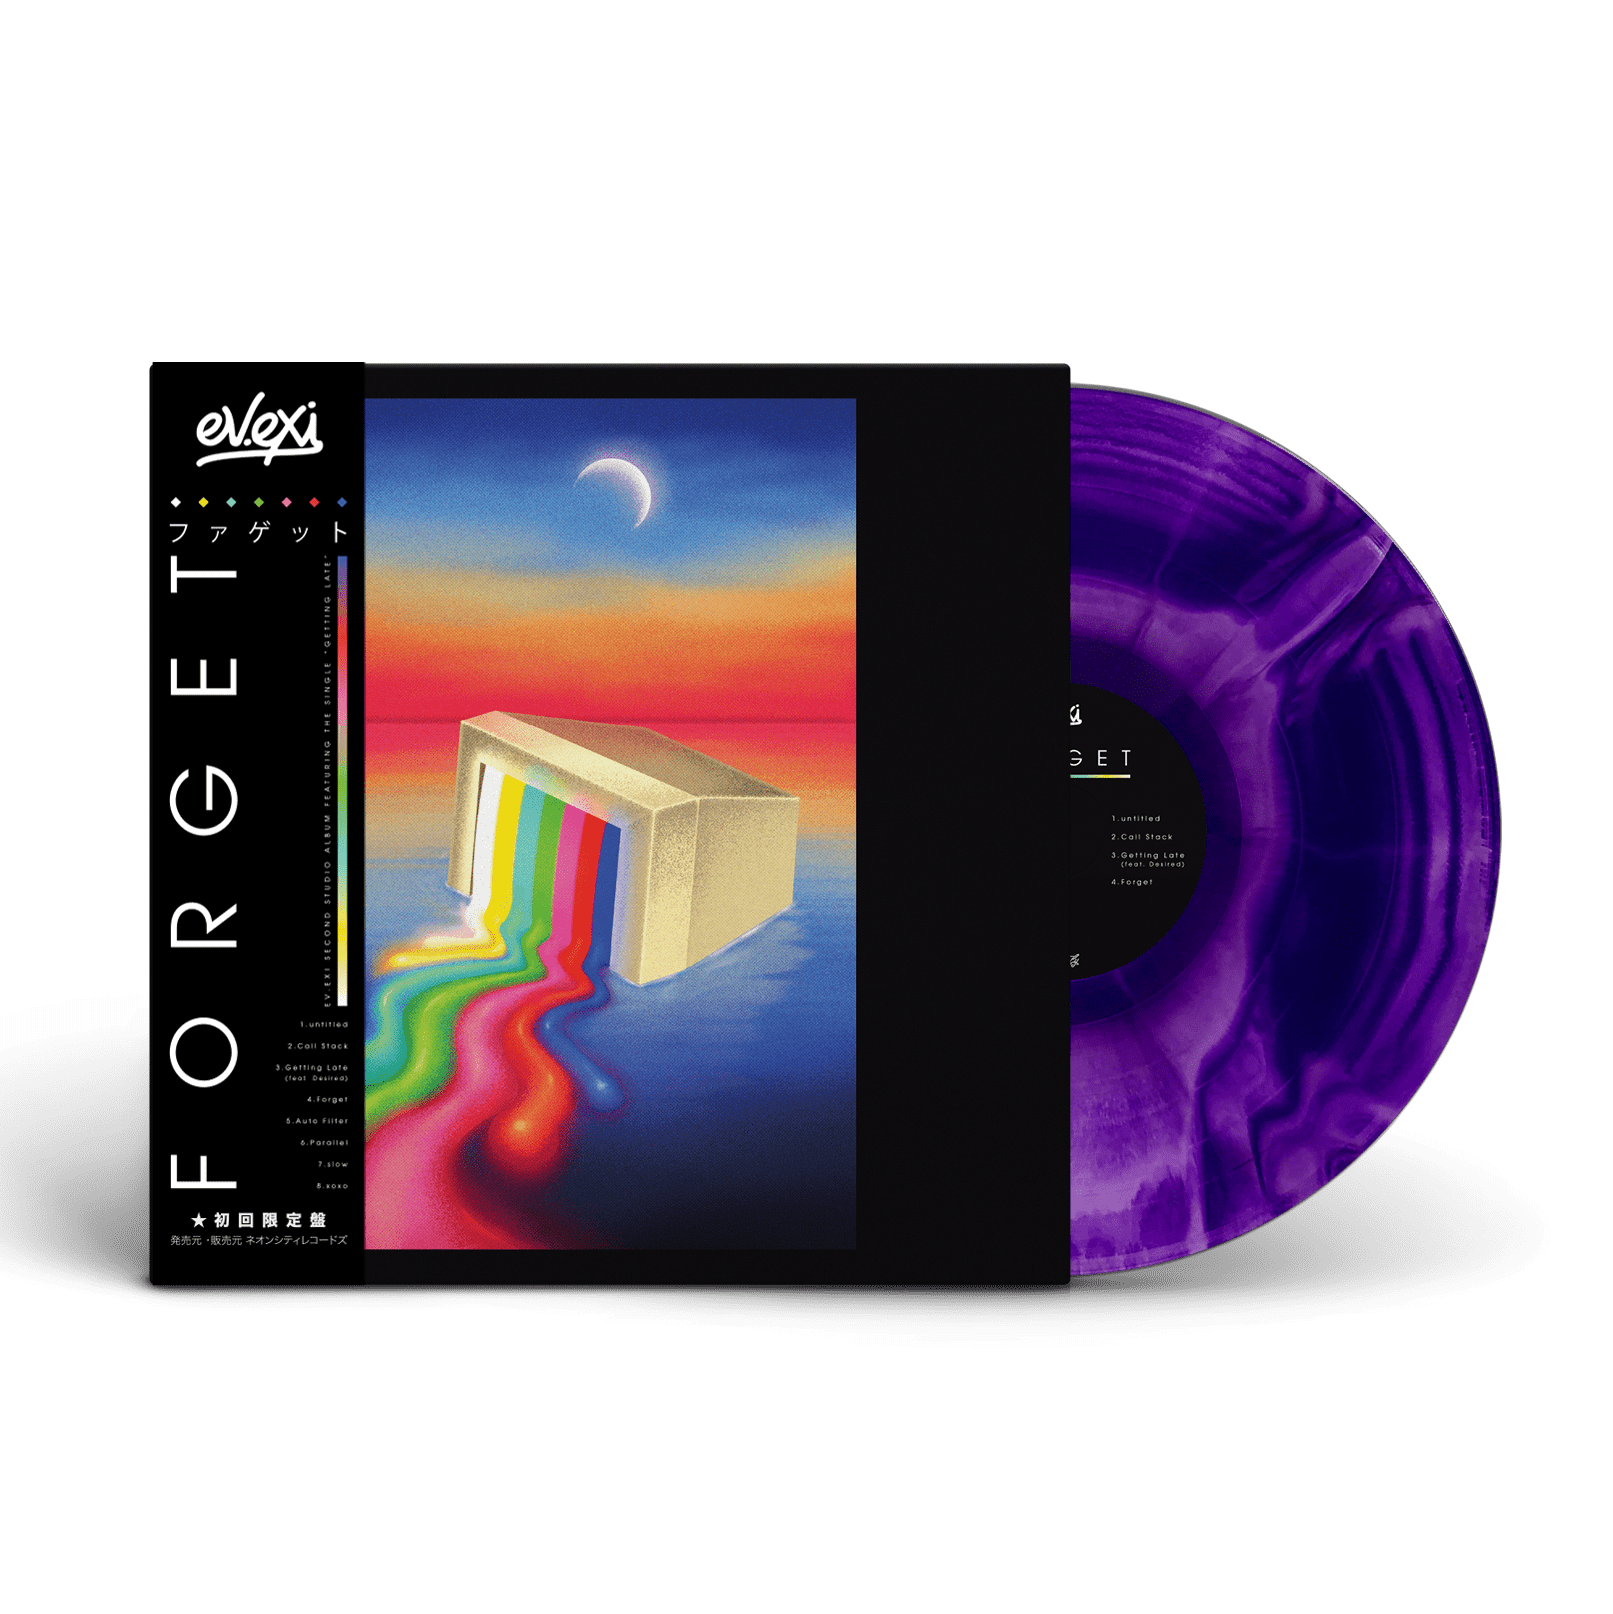 "ev.exi - Forget 12"" Colored Vinyl (Ships in 3 weeks)"